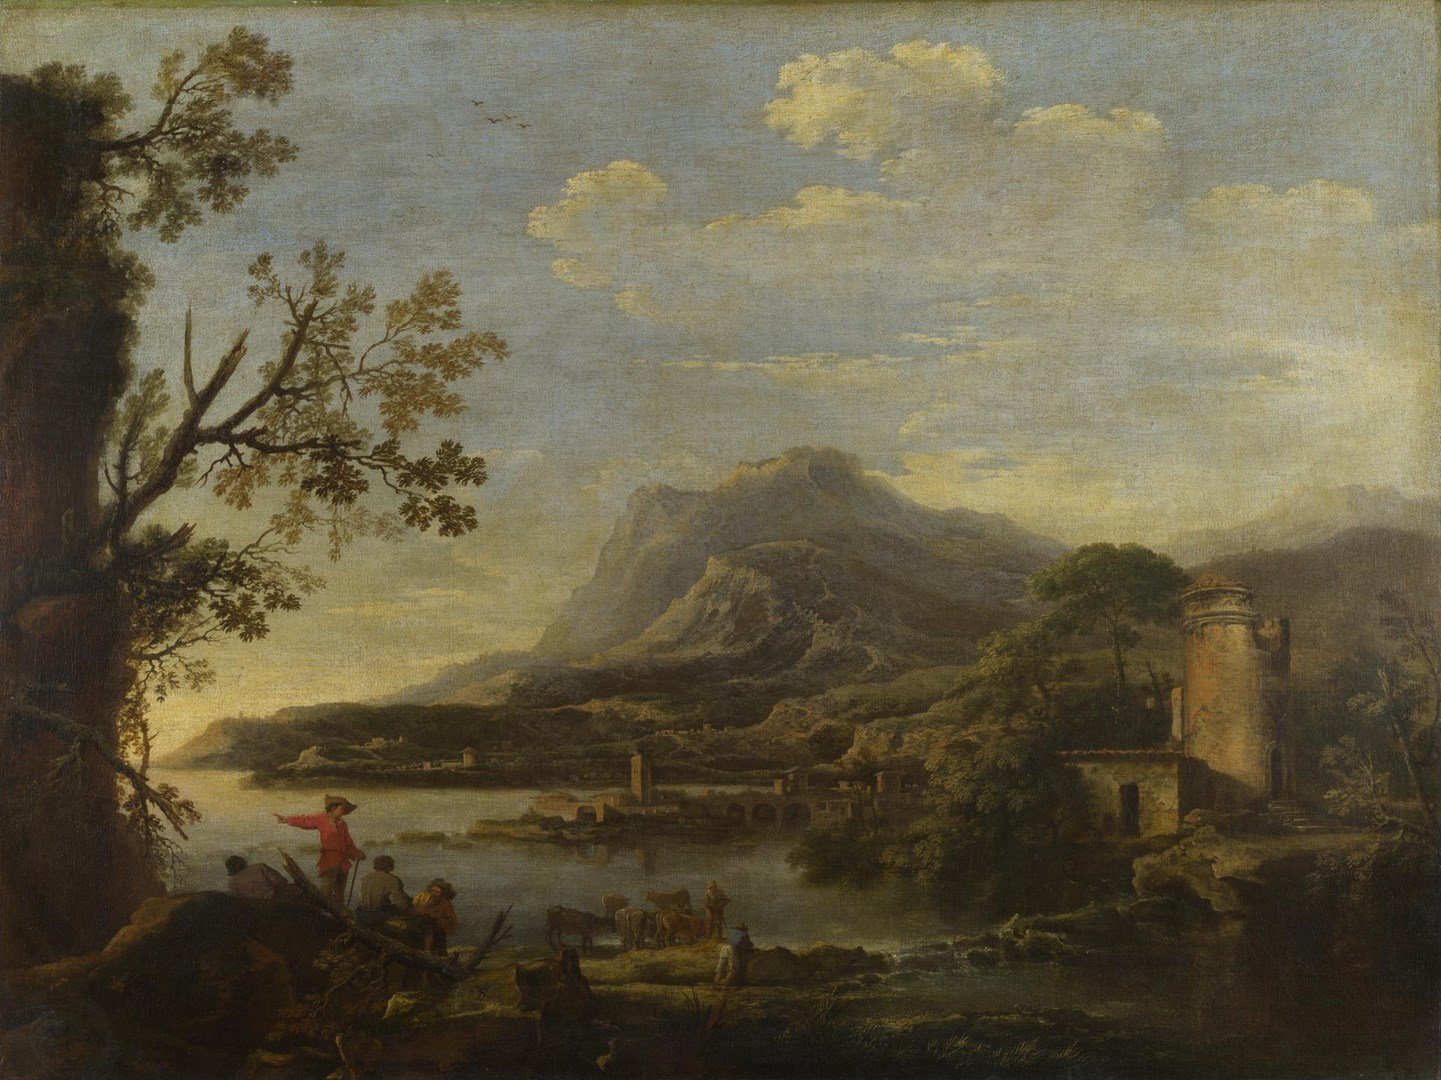 A Coastal Scene by Style of Salvator Rosa